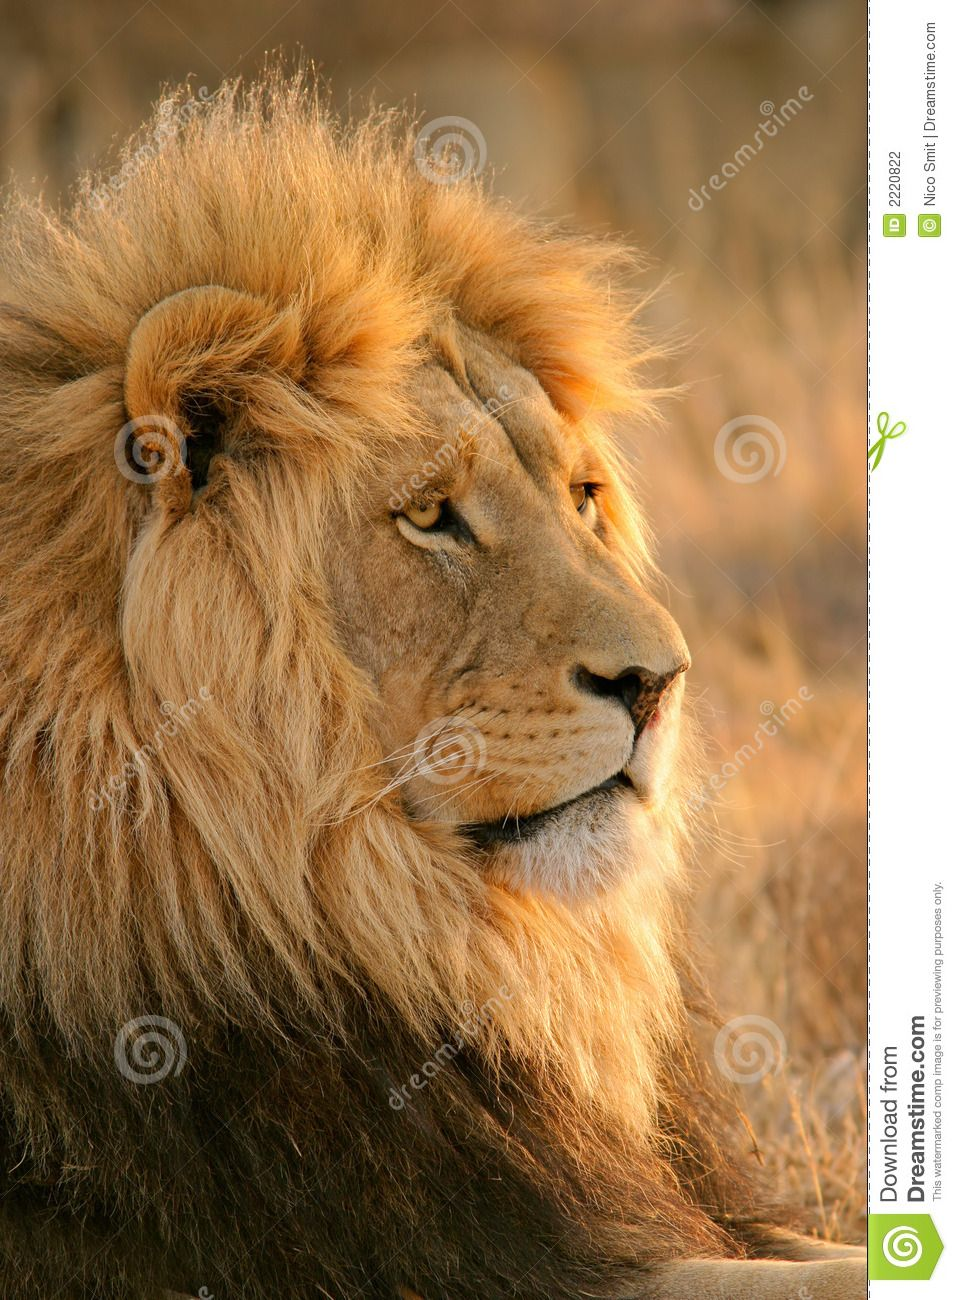 Pin by Kelsey Manthei on Lions | Lion, Male lion, Lion ...